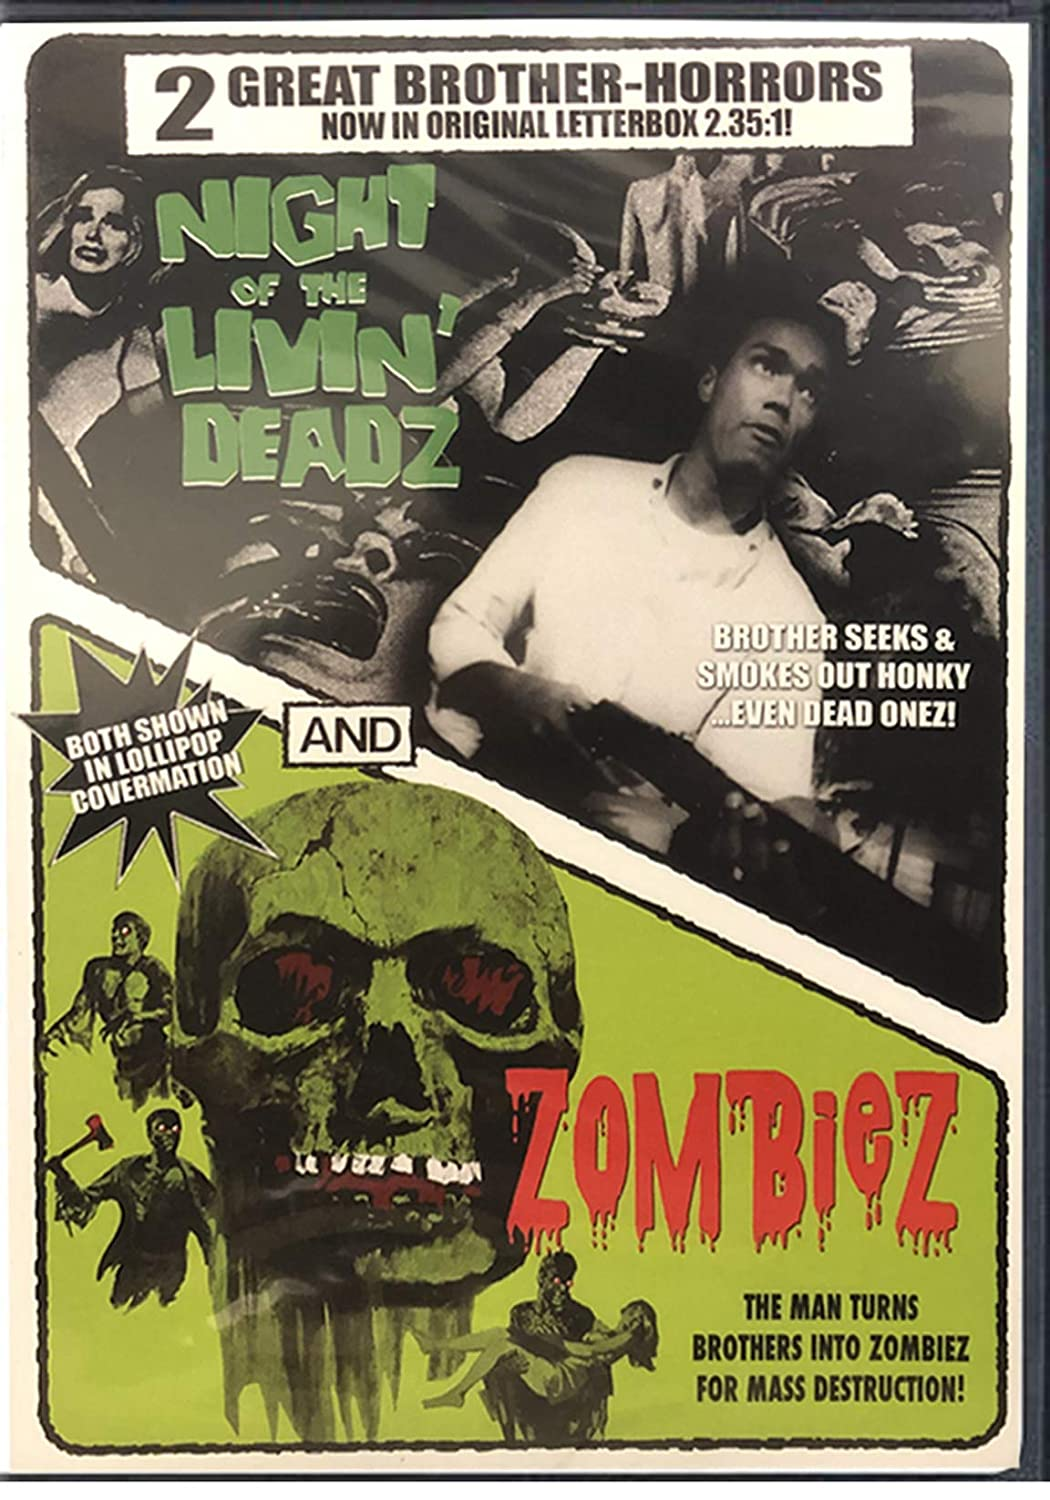 2 Great Brother Horrors - Night of the Livin Deadz George A. Romero + Zombies (AKA I Eat Your Skin) Double Feature Cult DVD Movies